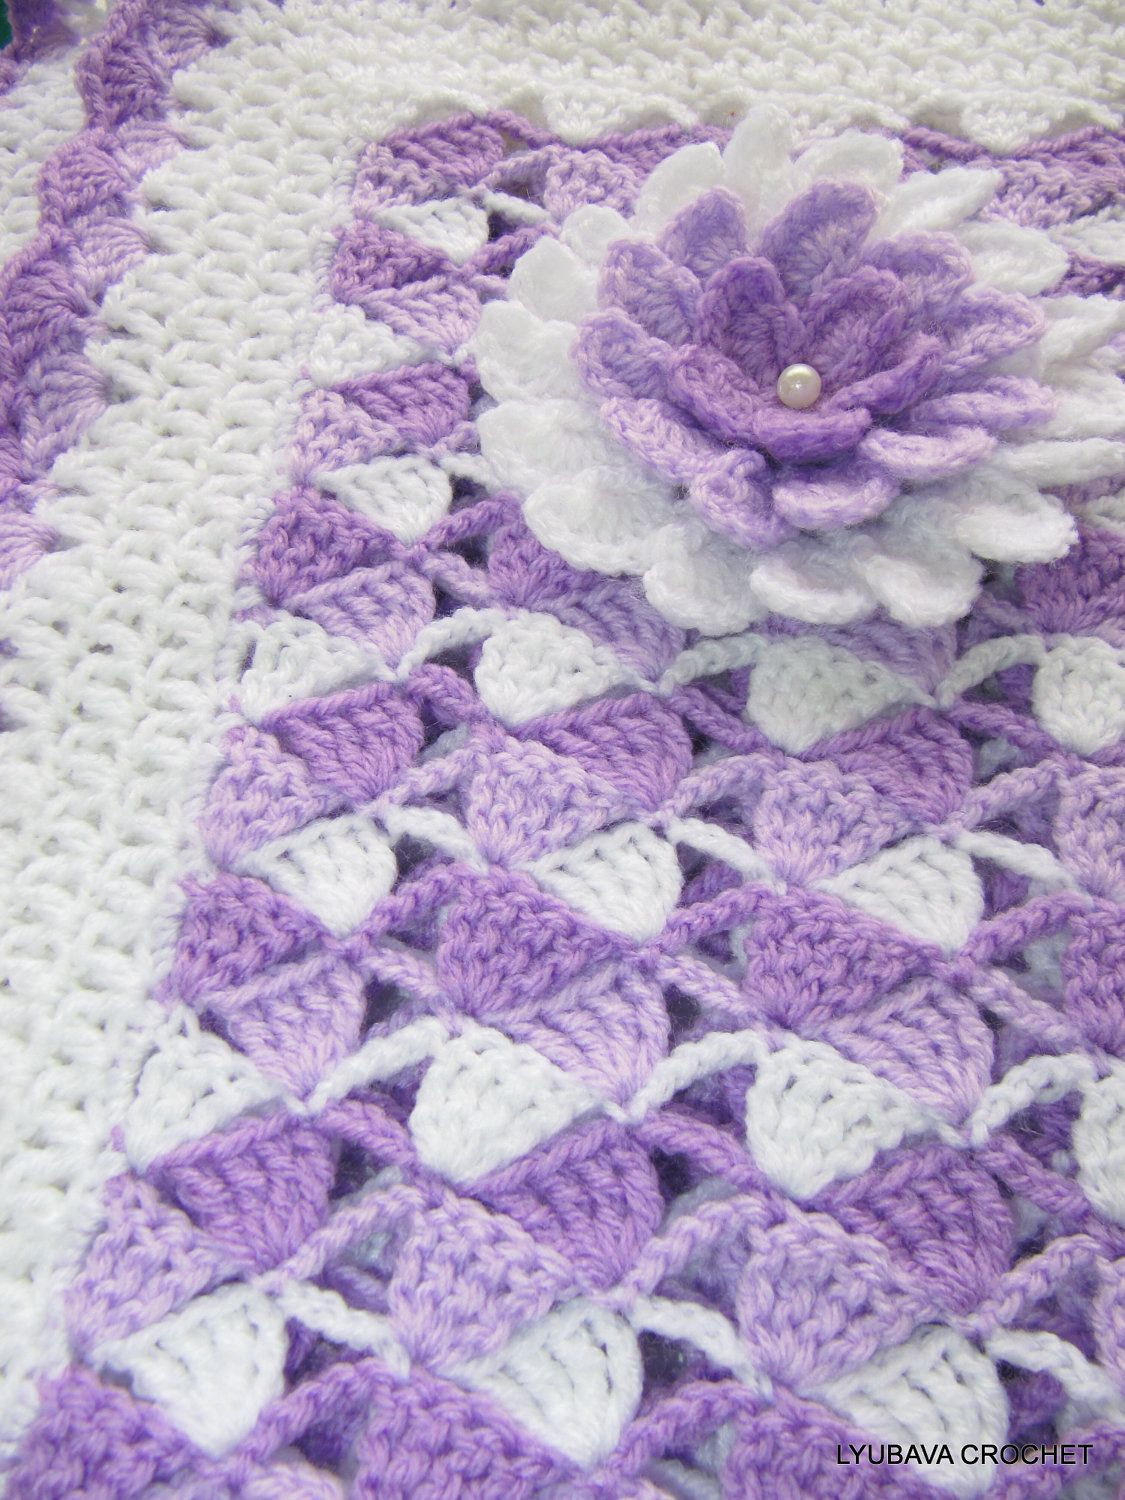 Baby Blanket Patterns Inspirational Crochet Baby Blanket Pattern Beautiful Lilac Baby Blanket Of Delightful 50 Pictures Baby Blanket Patterns